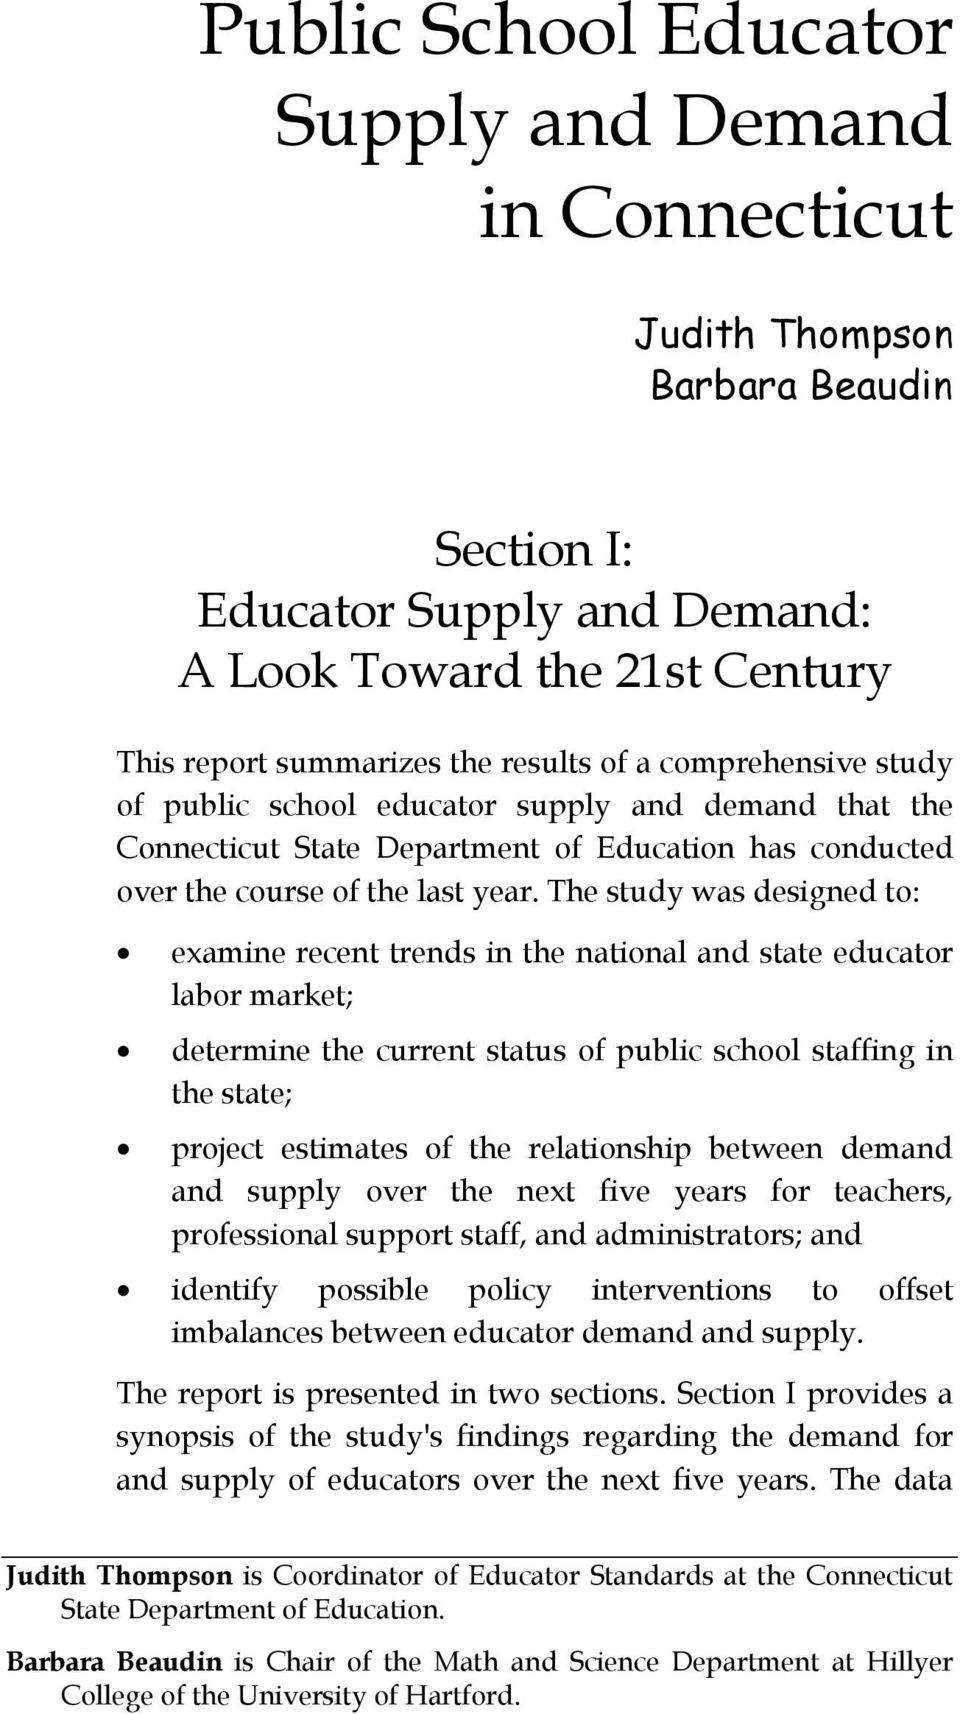 The study was designed to: examine recent trends in the national and state educator labor market; determine the current status of public school staffing in the state; project estimates of the